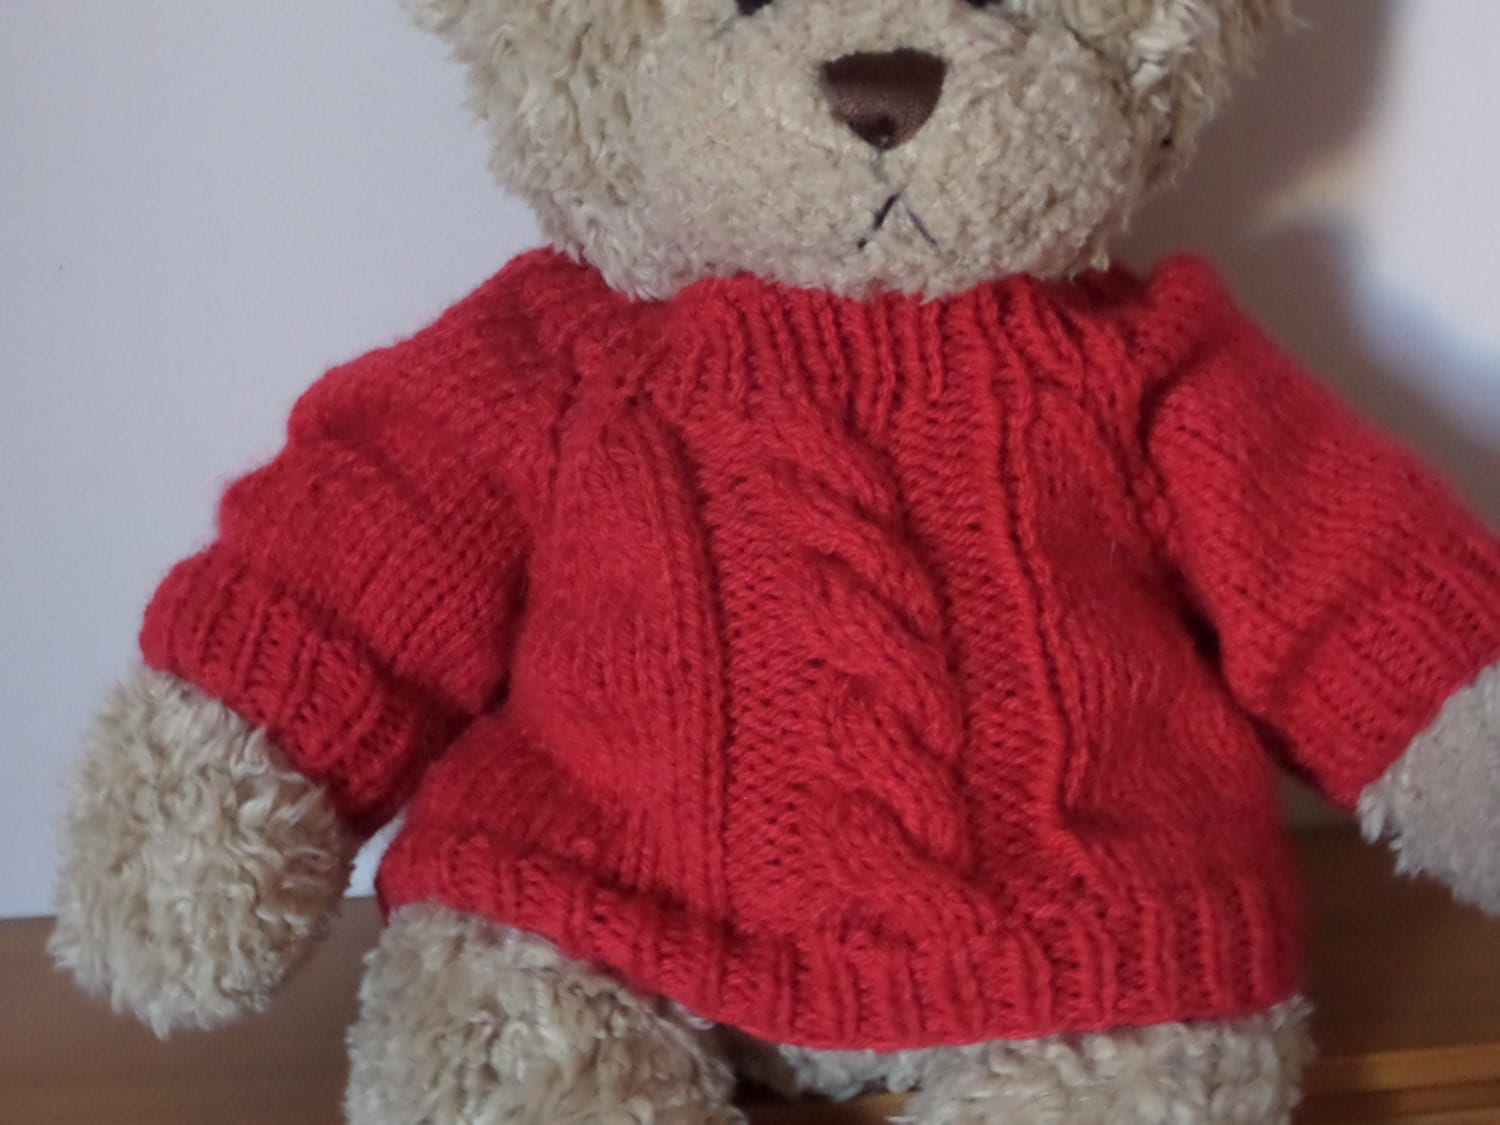 Teddy Bear Sweater Hand knitted Red Cable/Aran by KraftyKatsUK